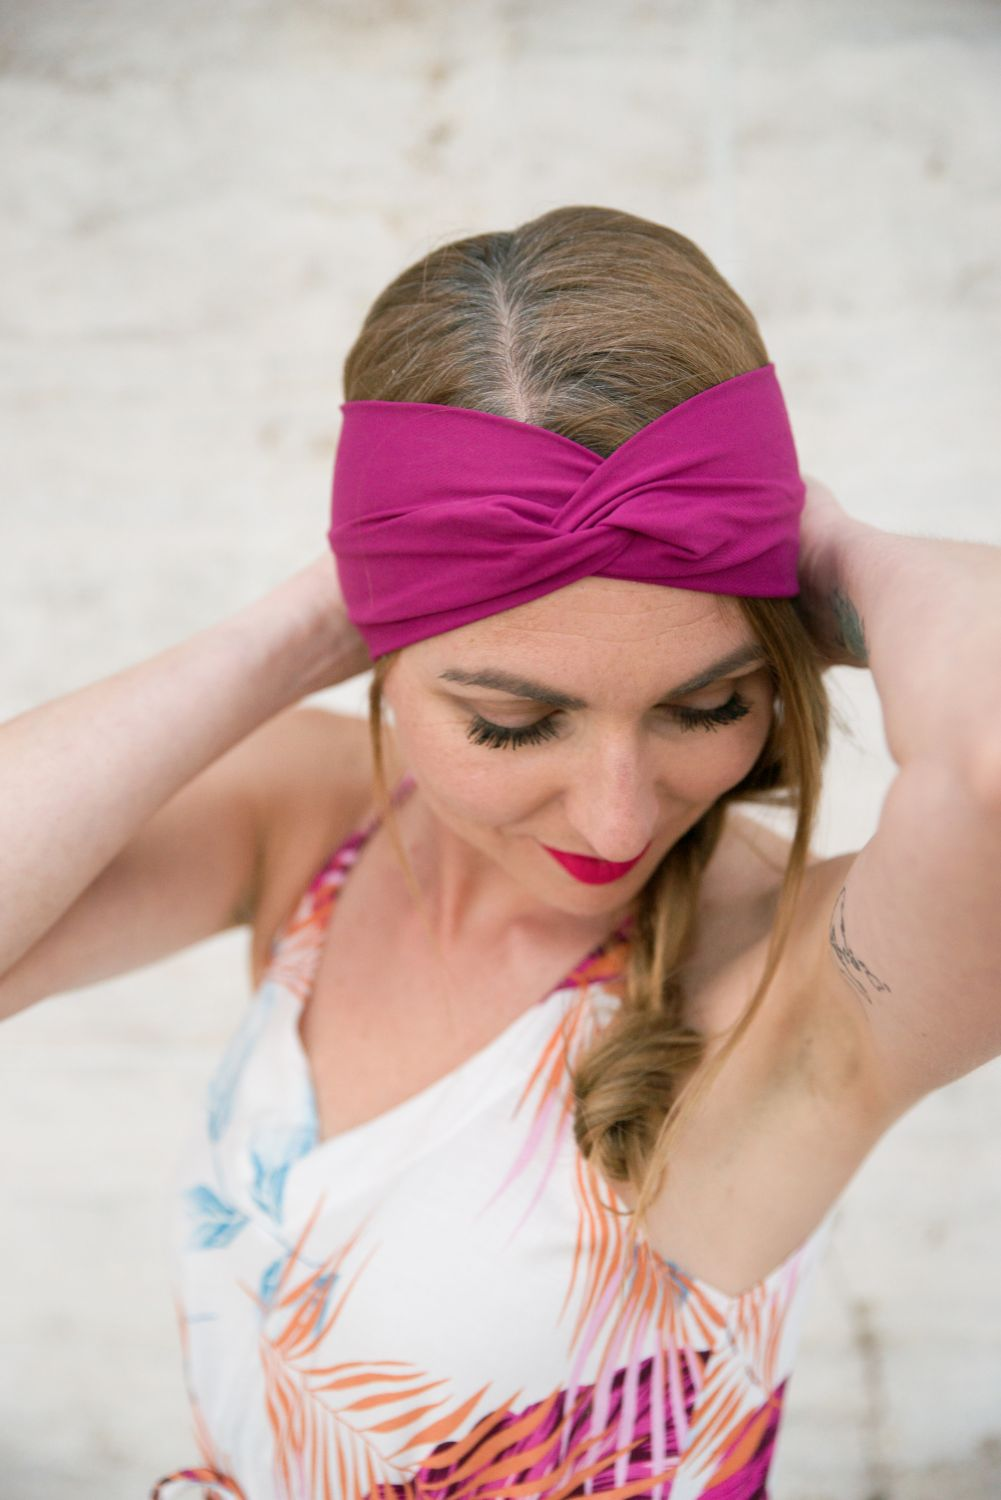 a female model is wearing a magenta pink headband